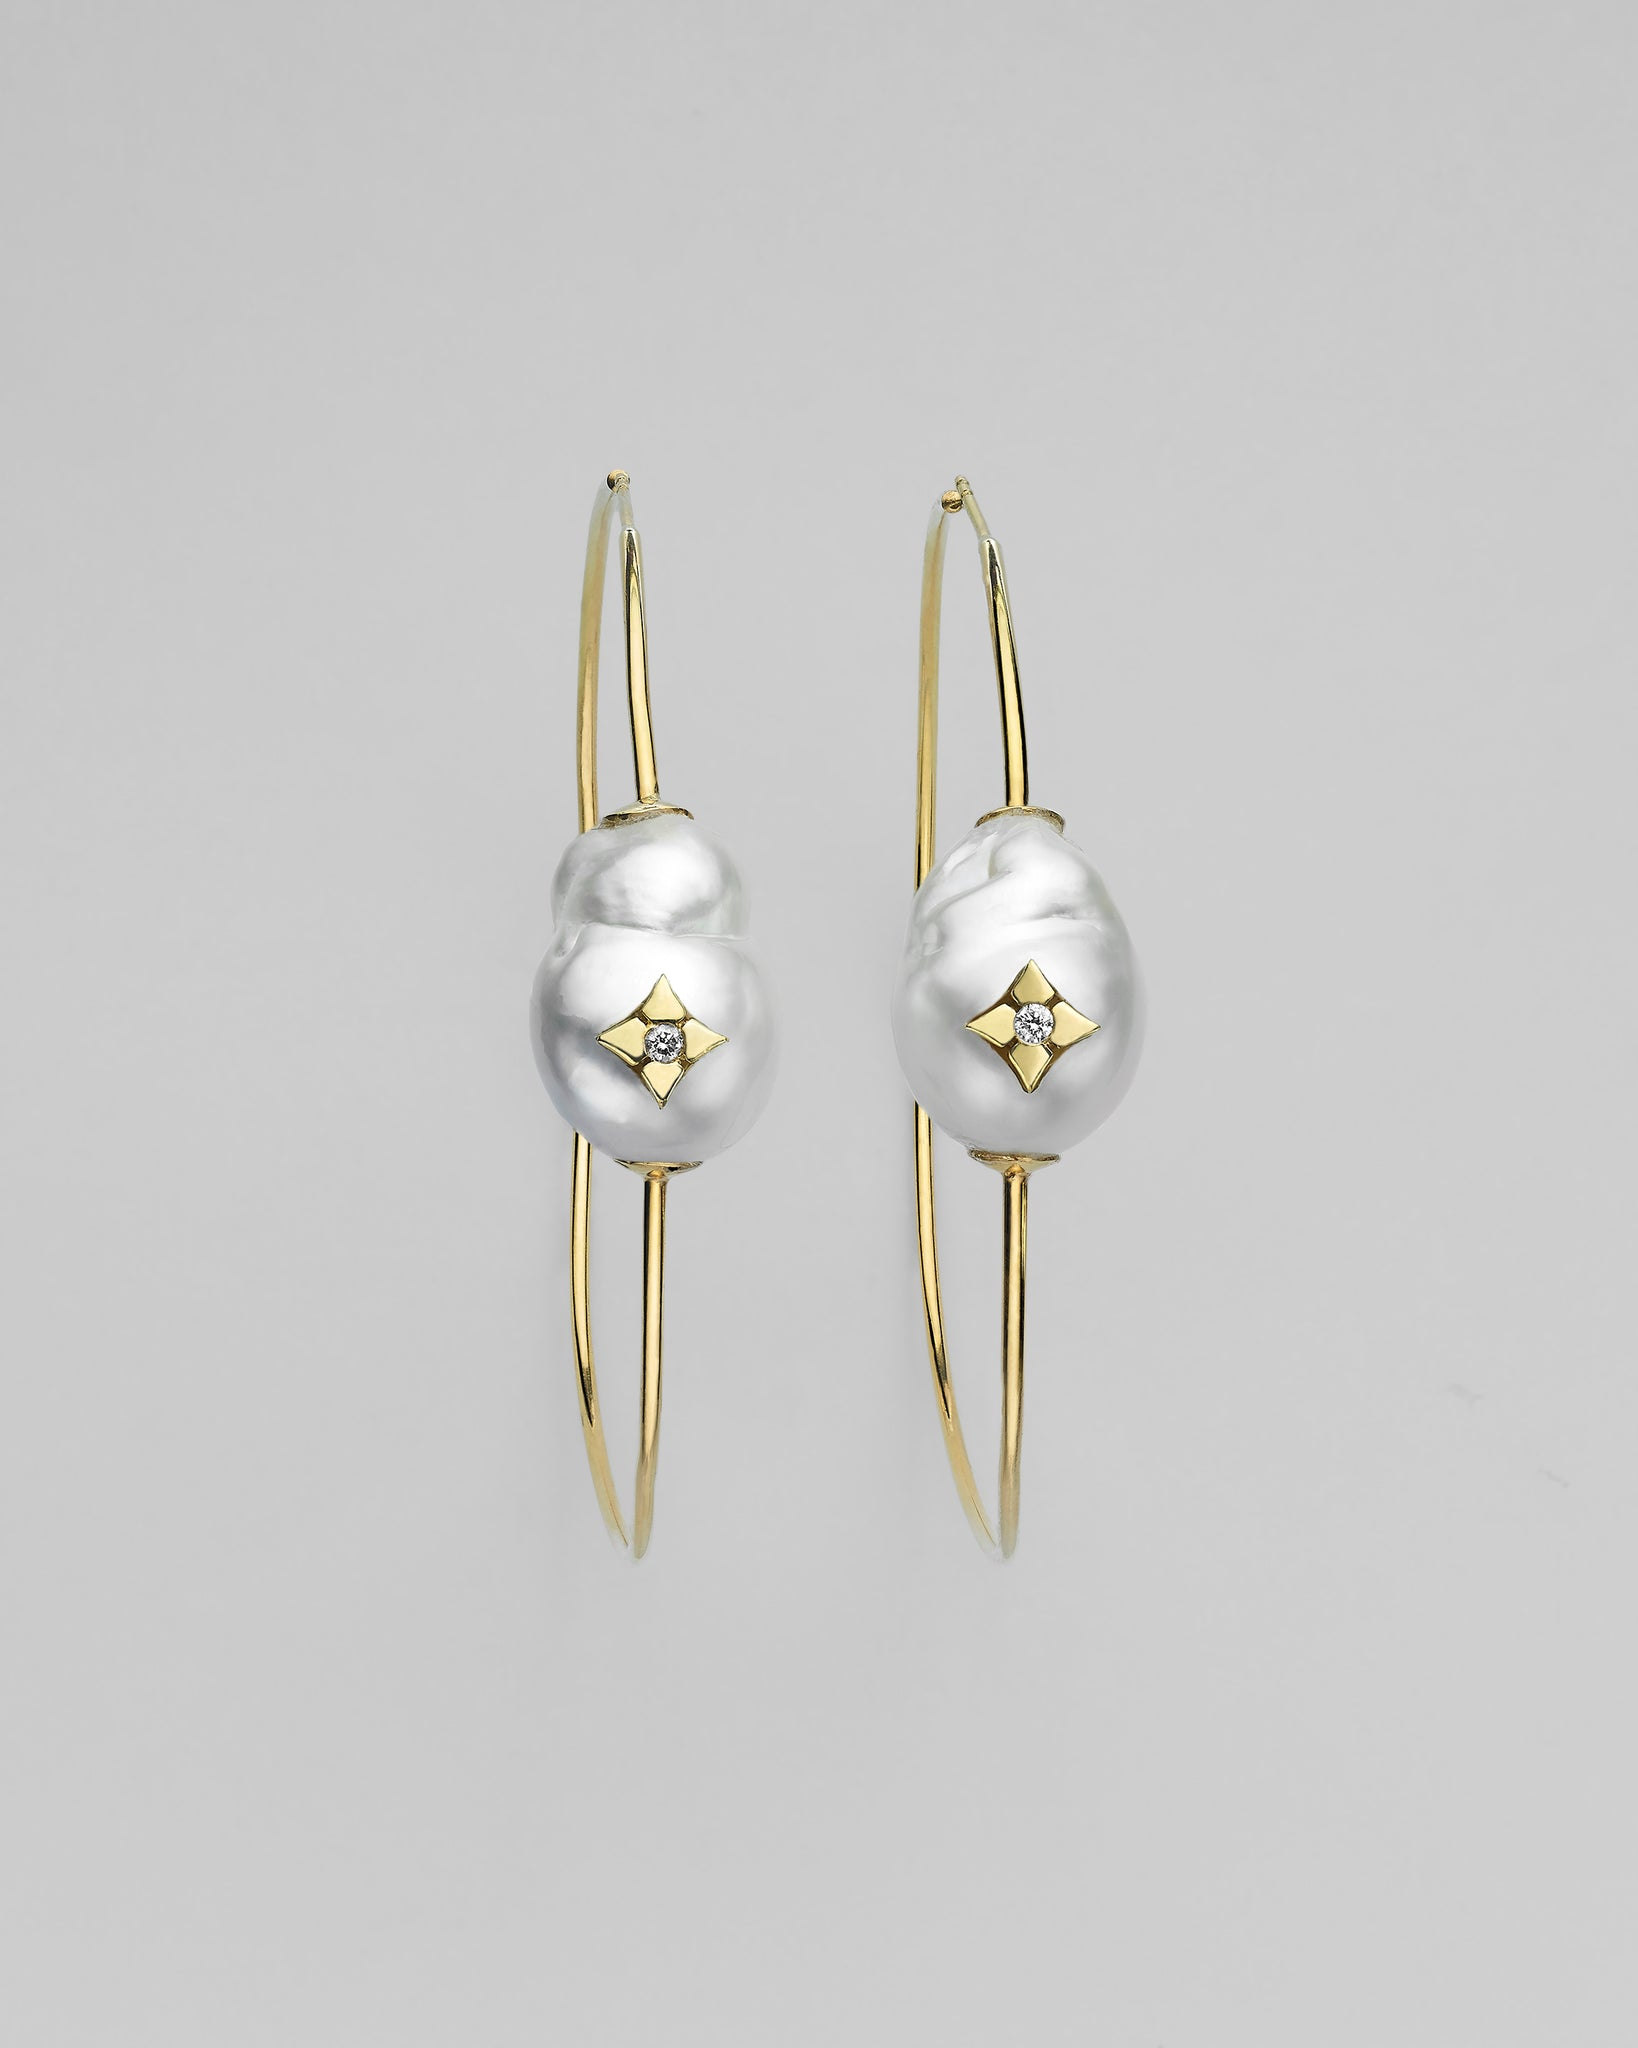 Hula Baroque South Sea Pearl Clover Inlay Charm Earrings